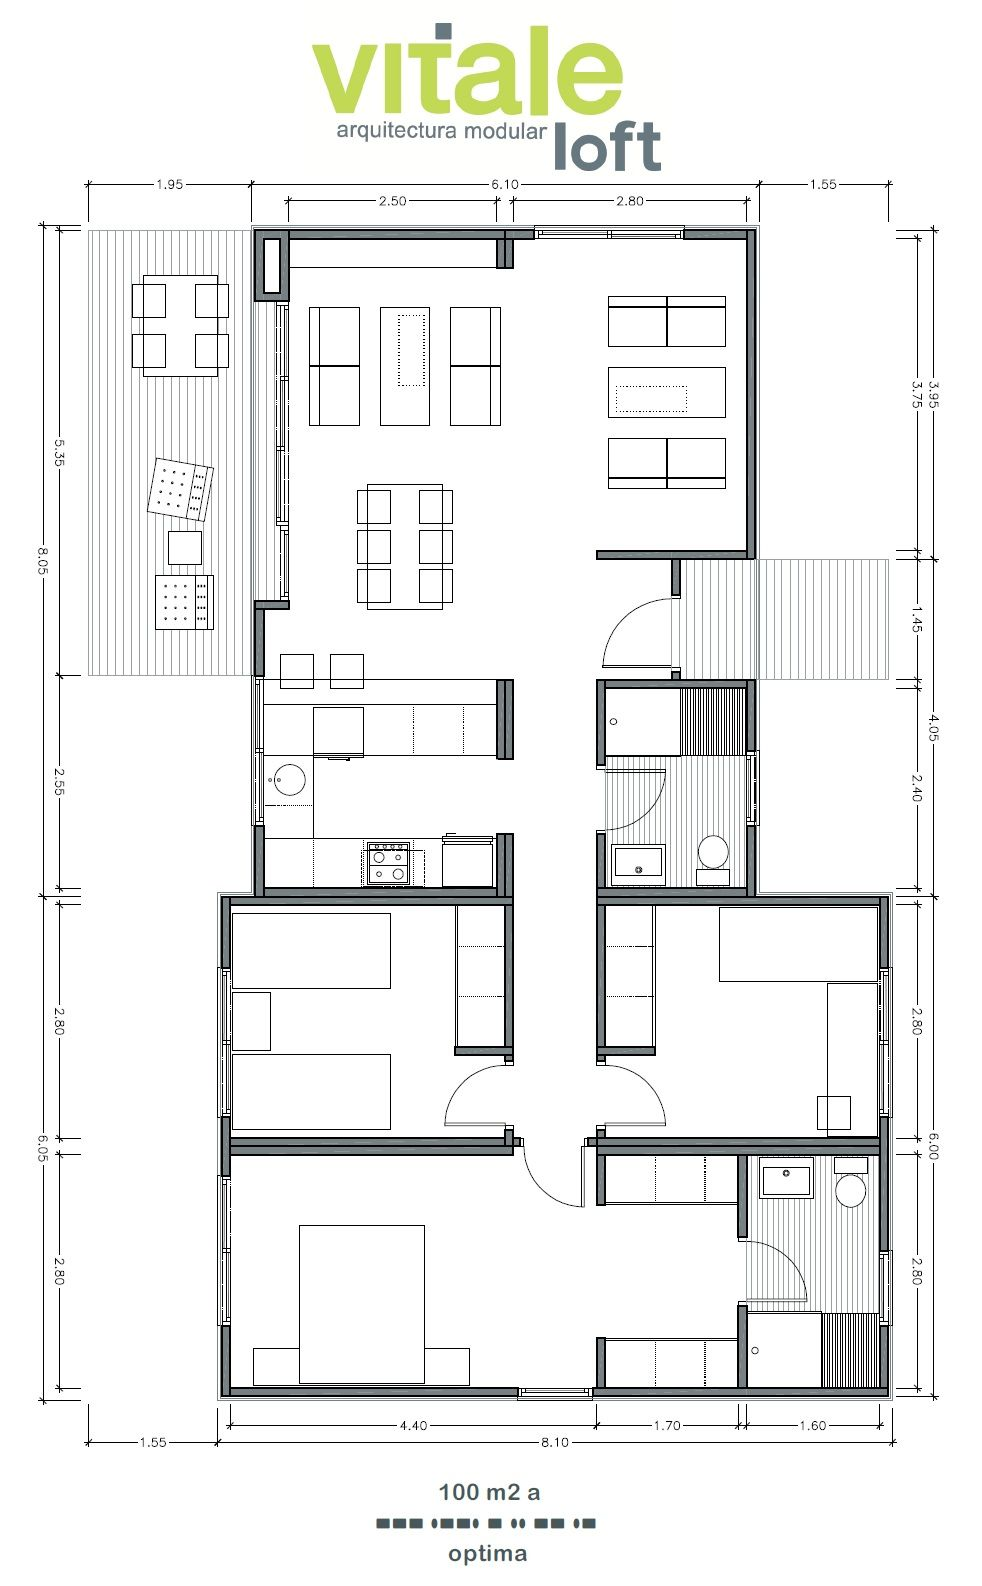 Modelo optima 100 m2 maison pinterest plans plans - Maison design moderne capital building ...